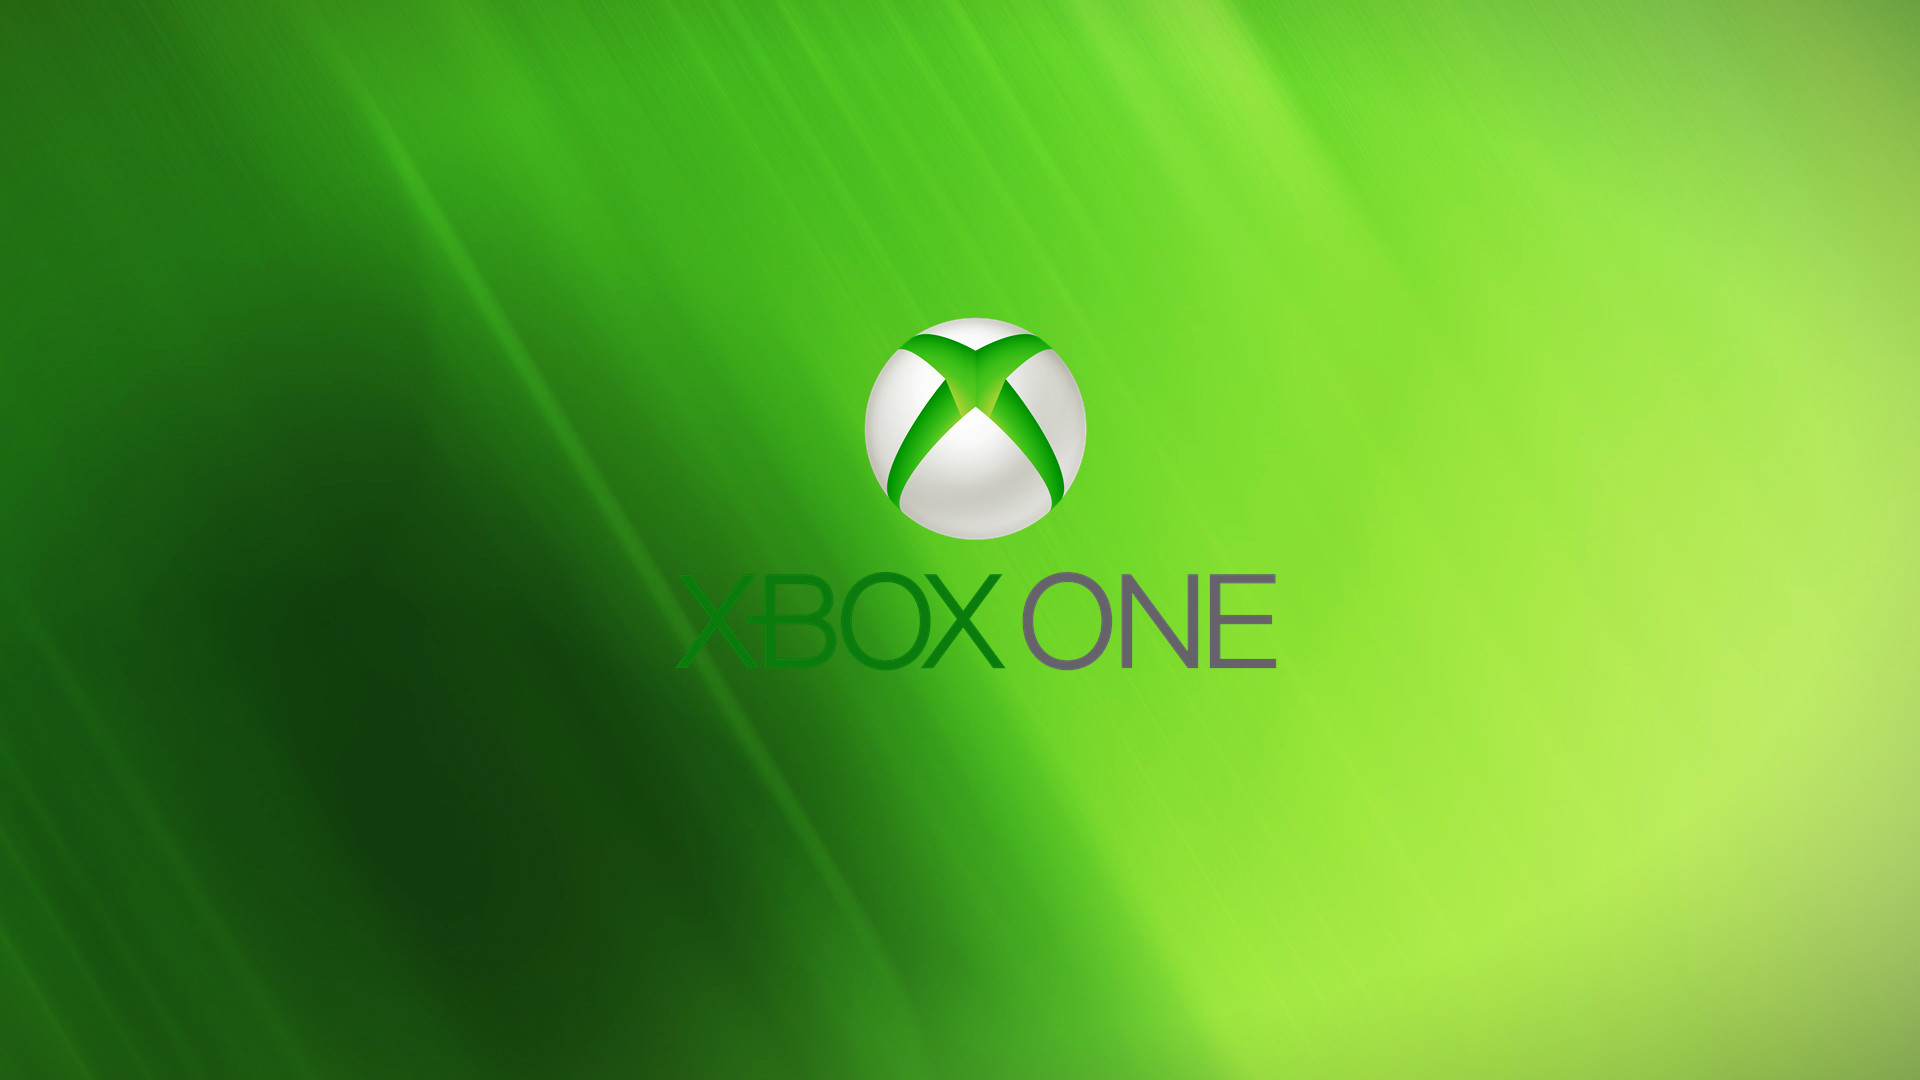 Xbox one wallpaper 81 images - Xbox one wallpaper 1920x1080 ...